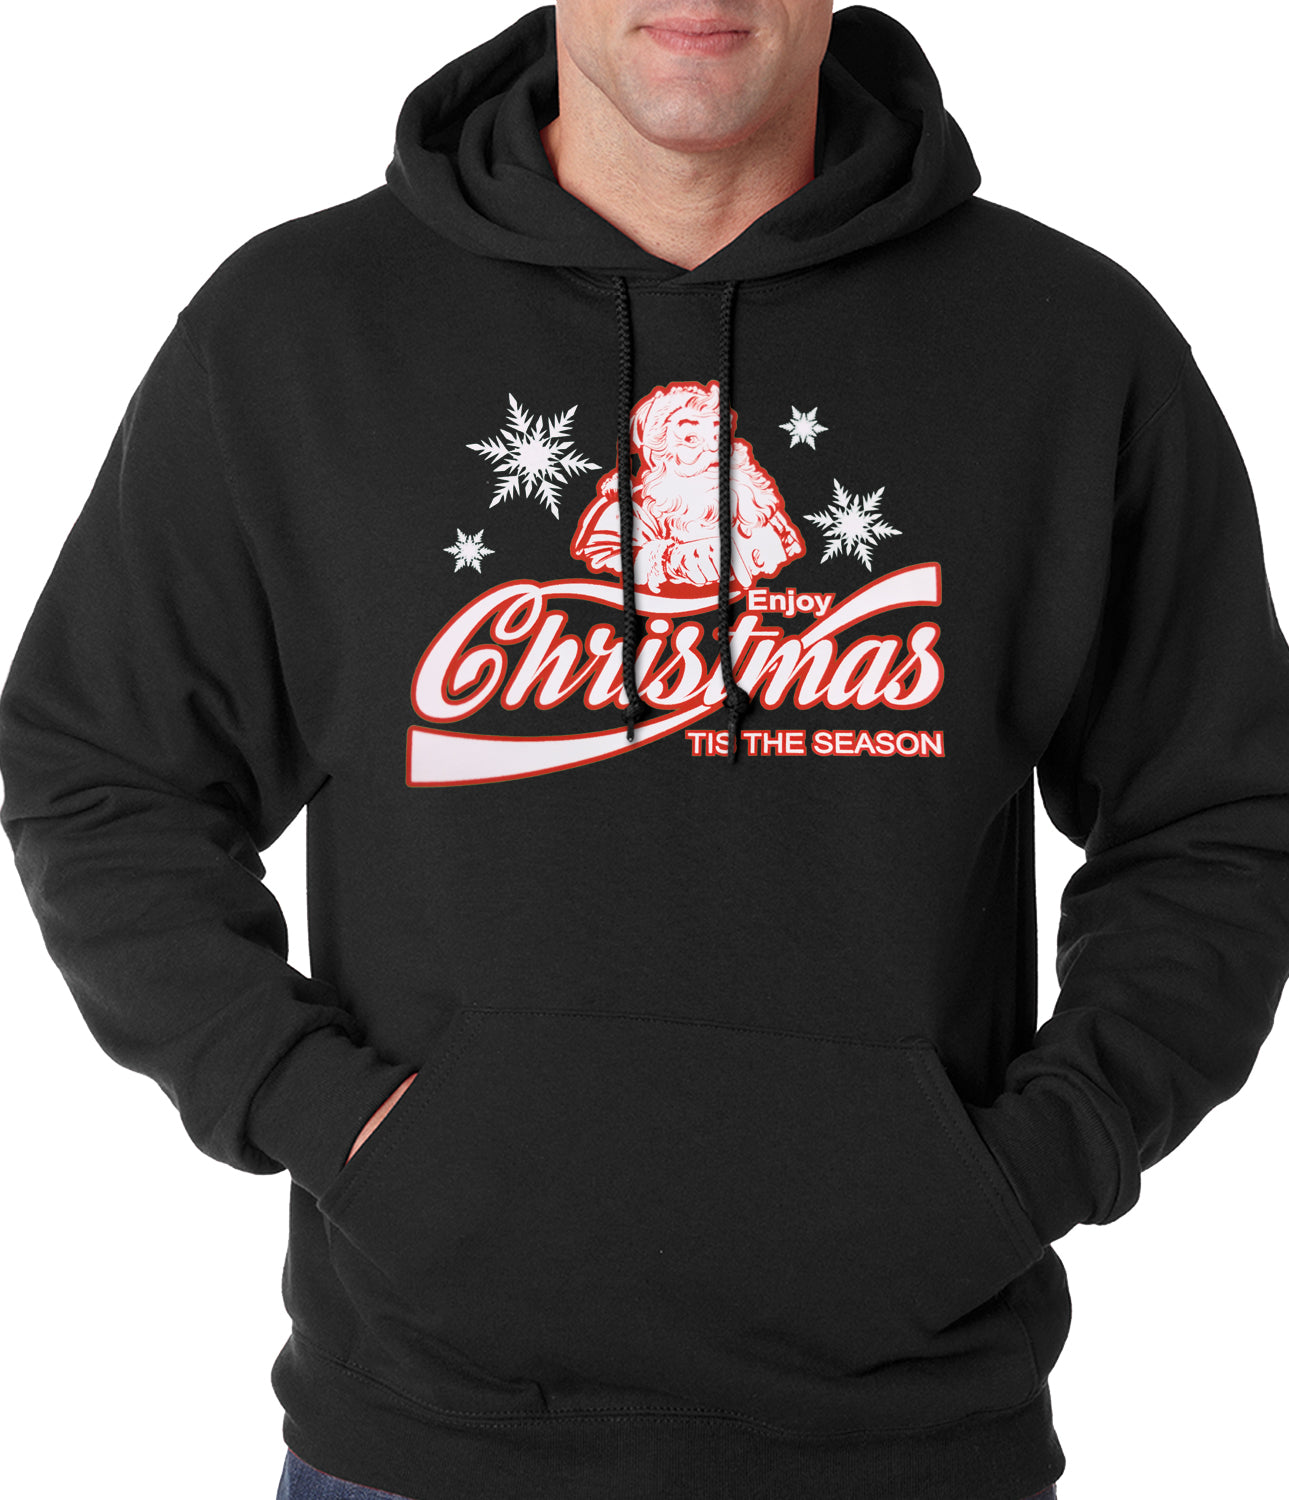 Enjoy Christmas Tis The Season Adult Hoodie